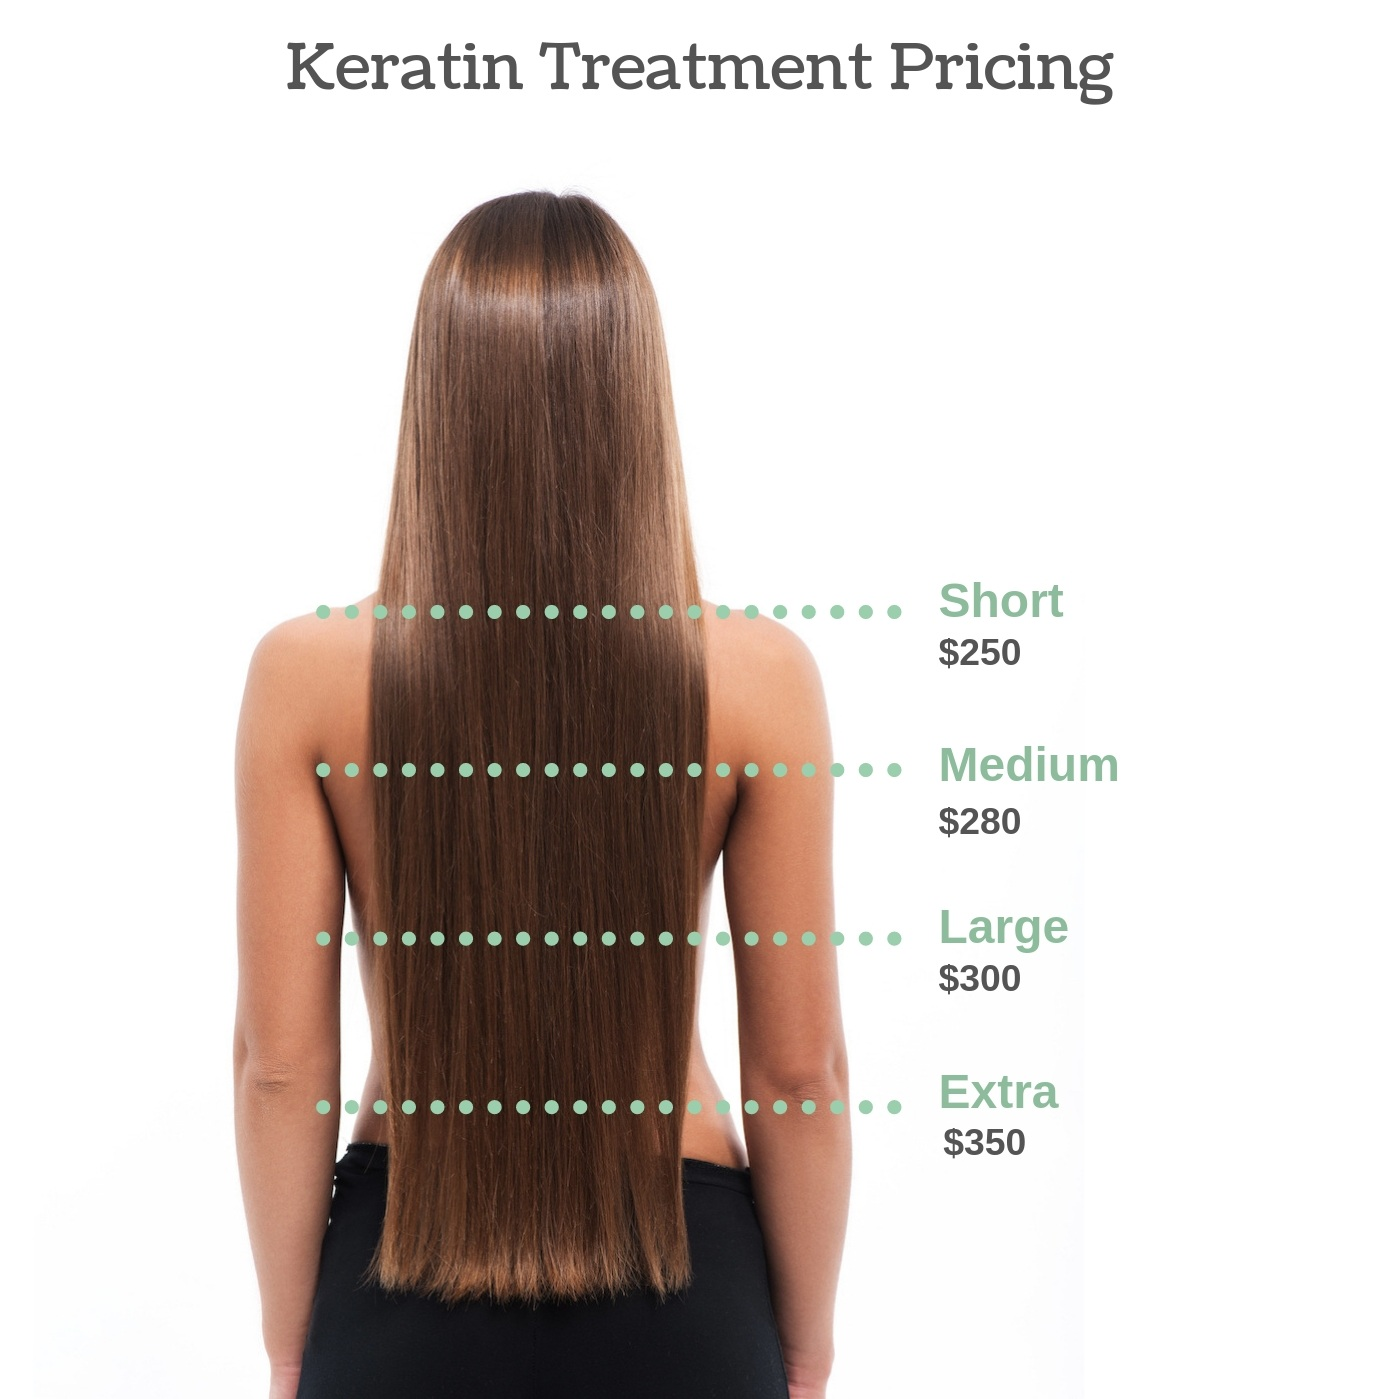 ***Pricing may increase depending on hair texture.